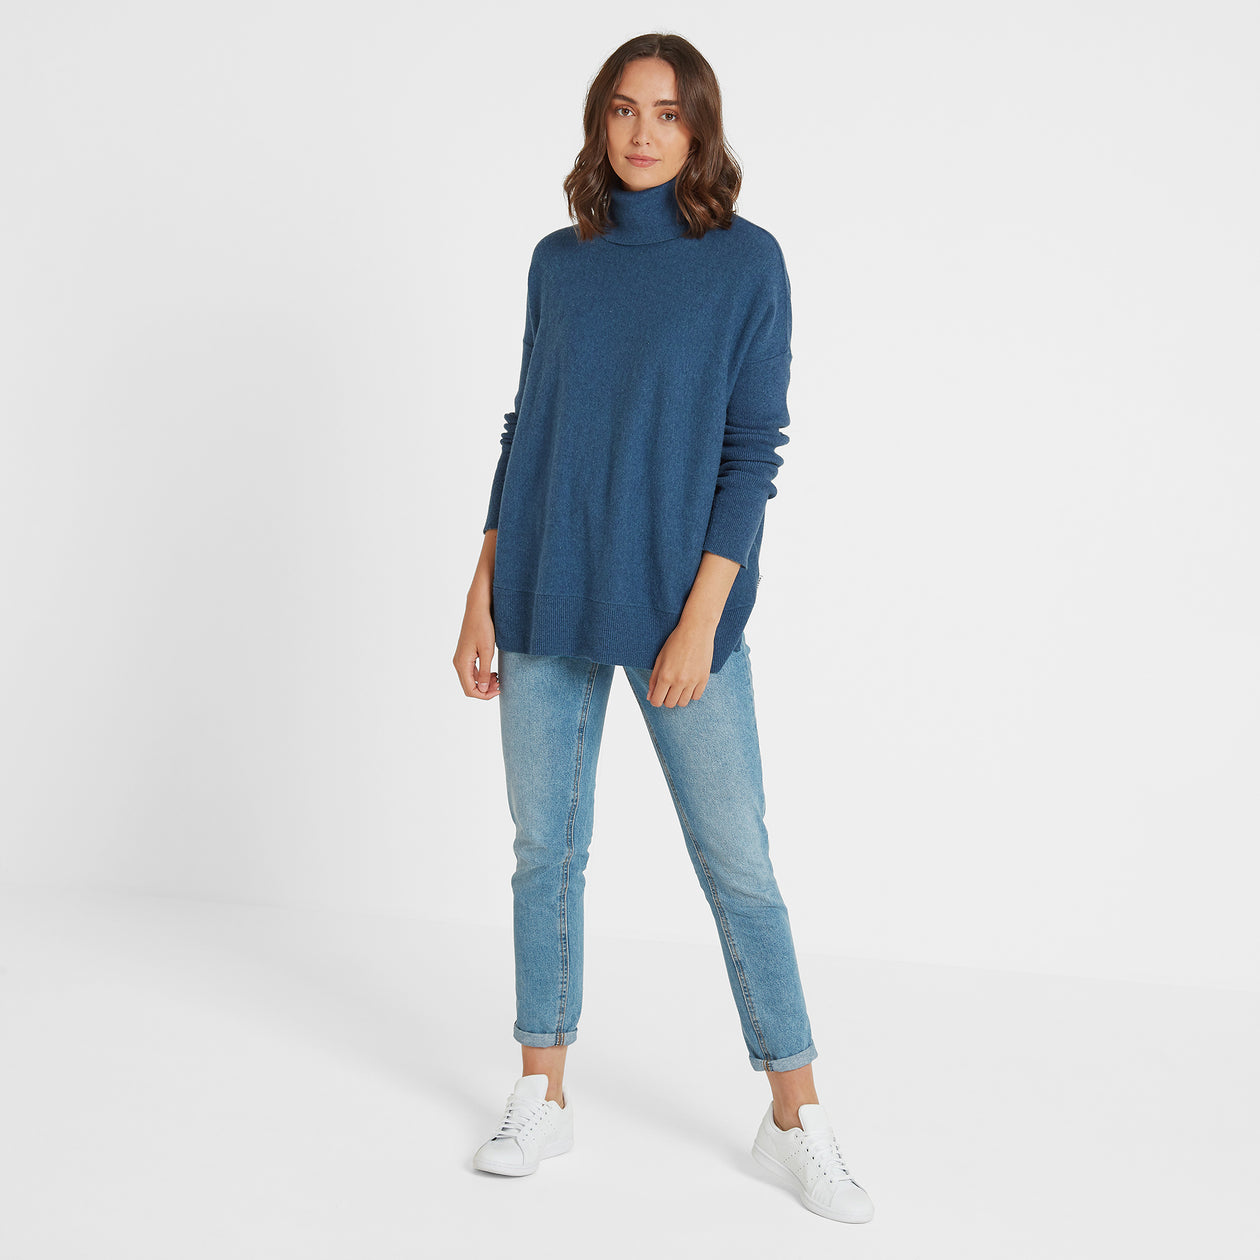 Alana Womens Light Roll Neck Jumper - Atlantic Blue Marl image 4